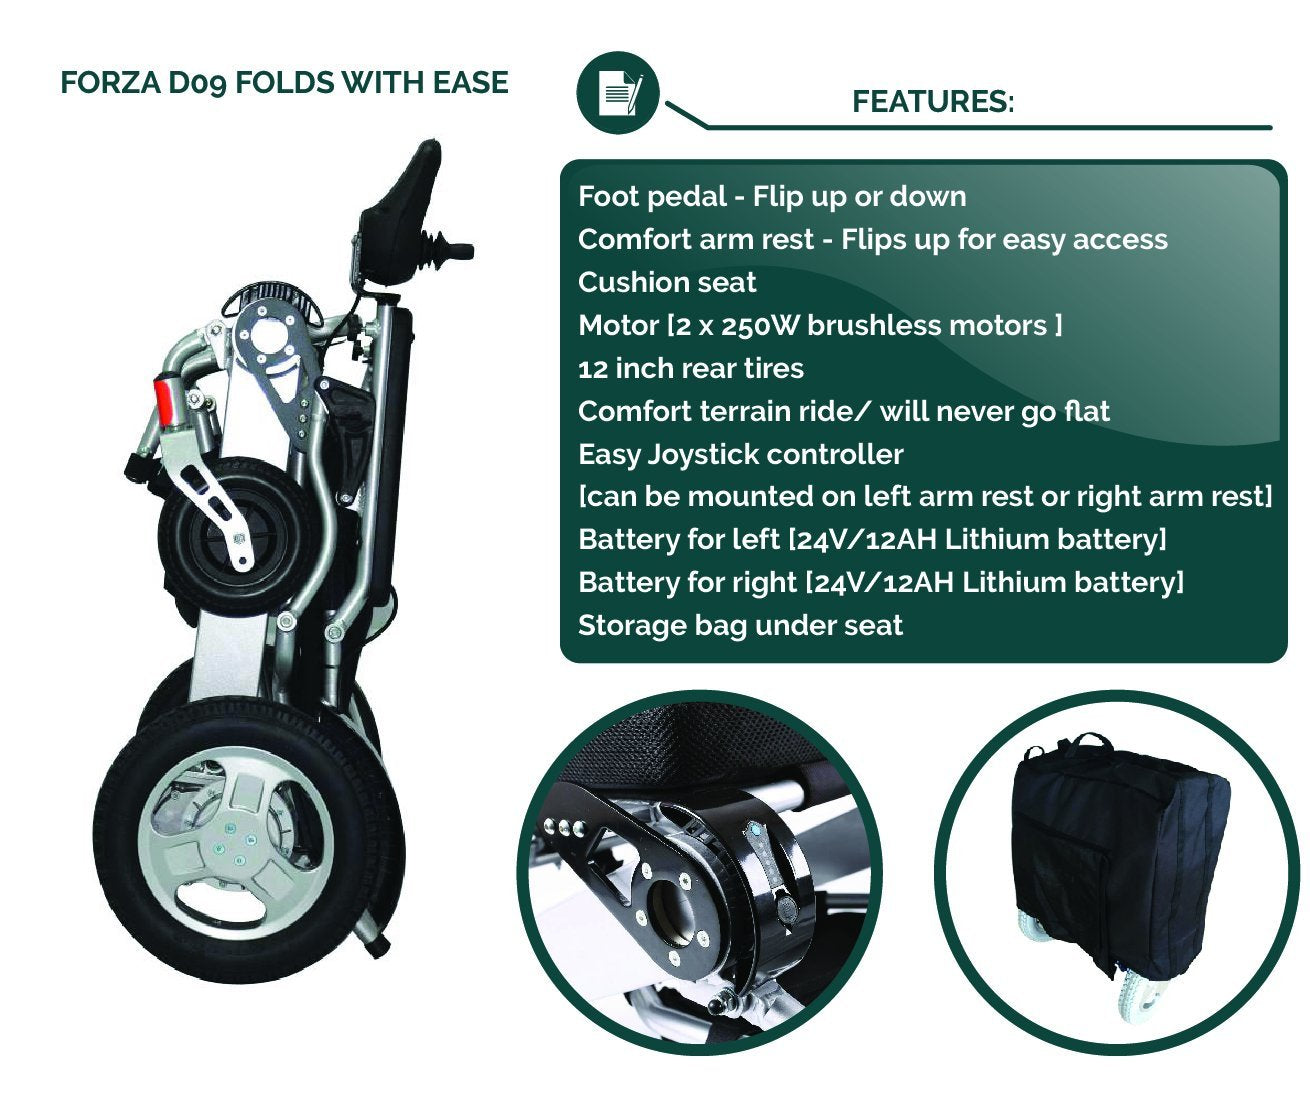 Sentire Med Forza D09 Deluxe Fold Foldable Power Compact Mobility Aid Wheel  Chair, Lightweight Folding Carry Electric Wheelchair, Motorized Wheelchair,  ...